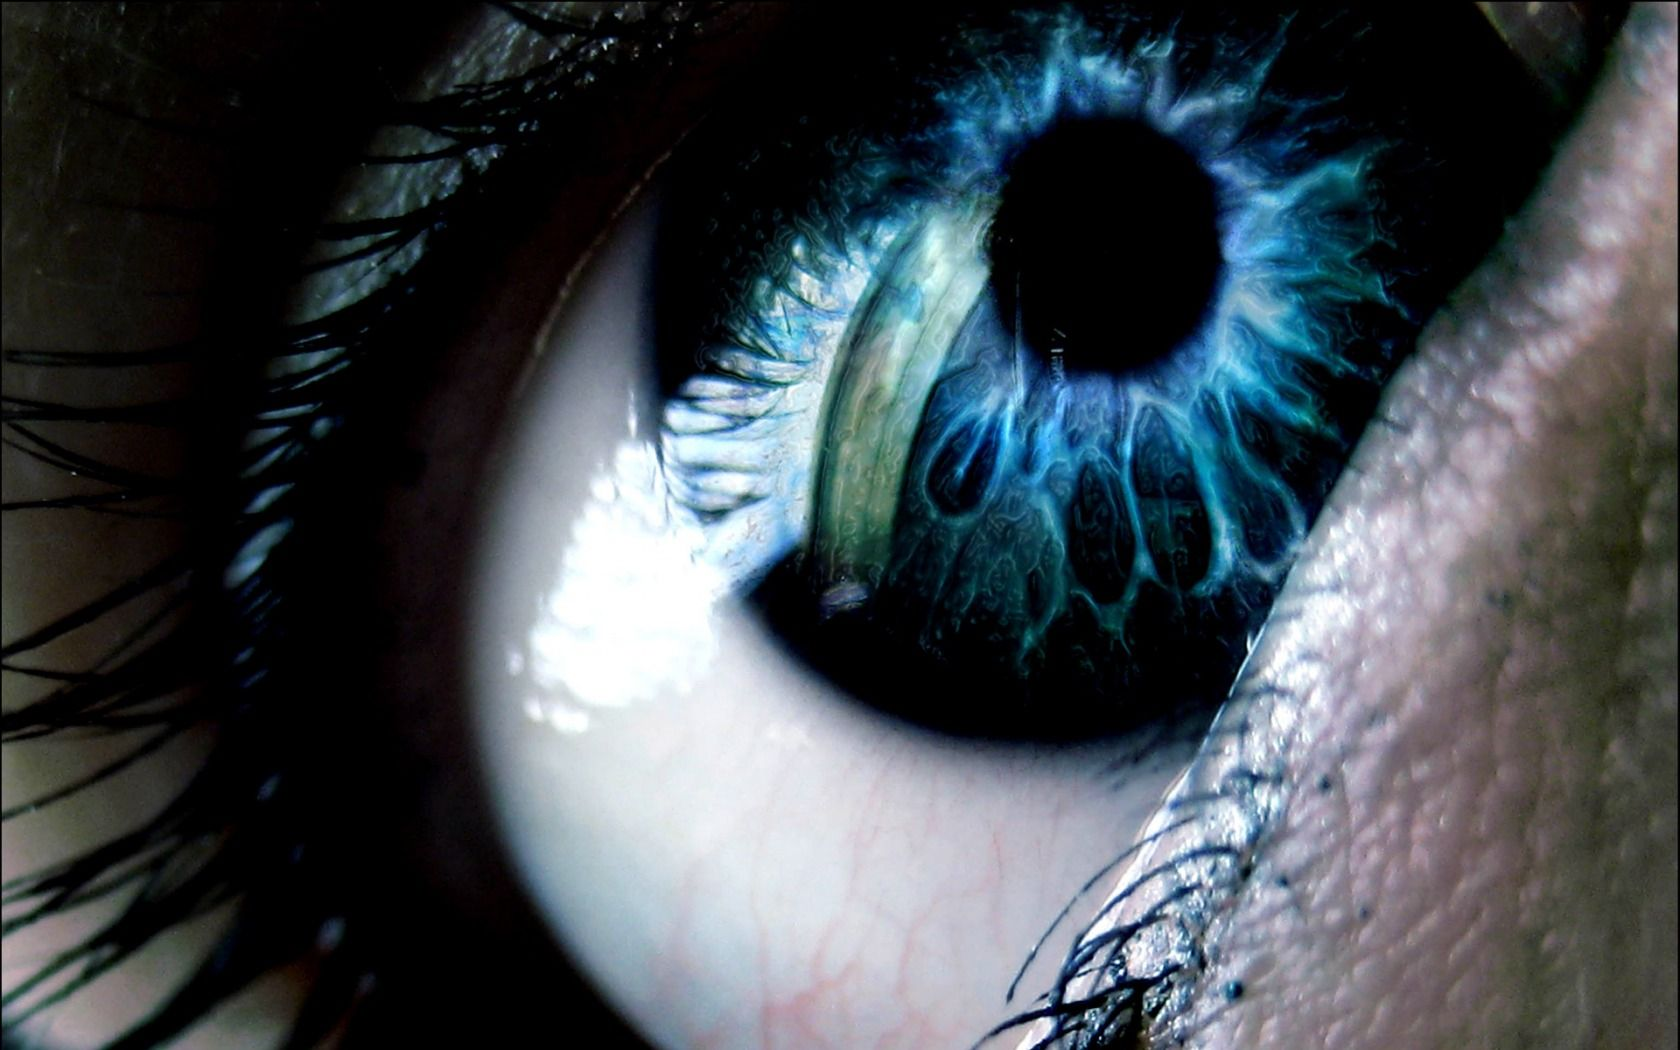 Hd wallpaper eyes - Collection Of Eyes Hd Wallpapers Http Backgroundwallpaperpics Com Collection